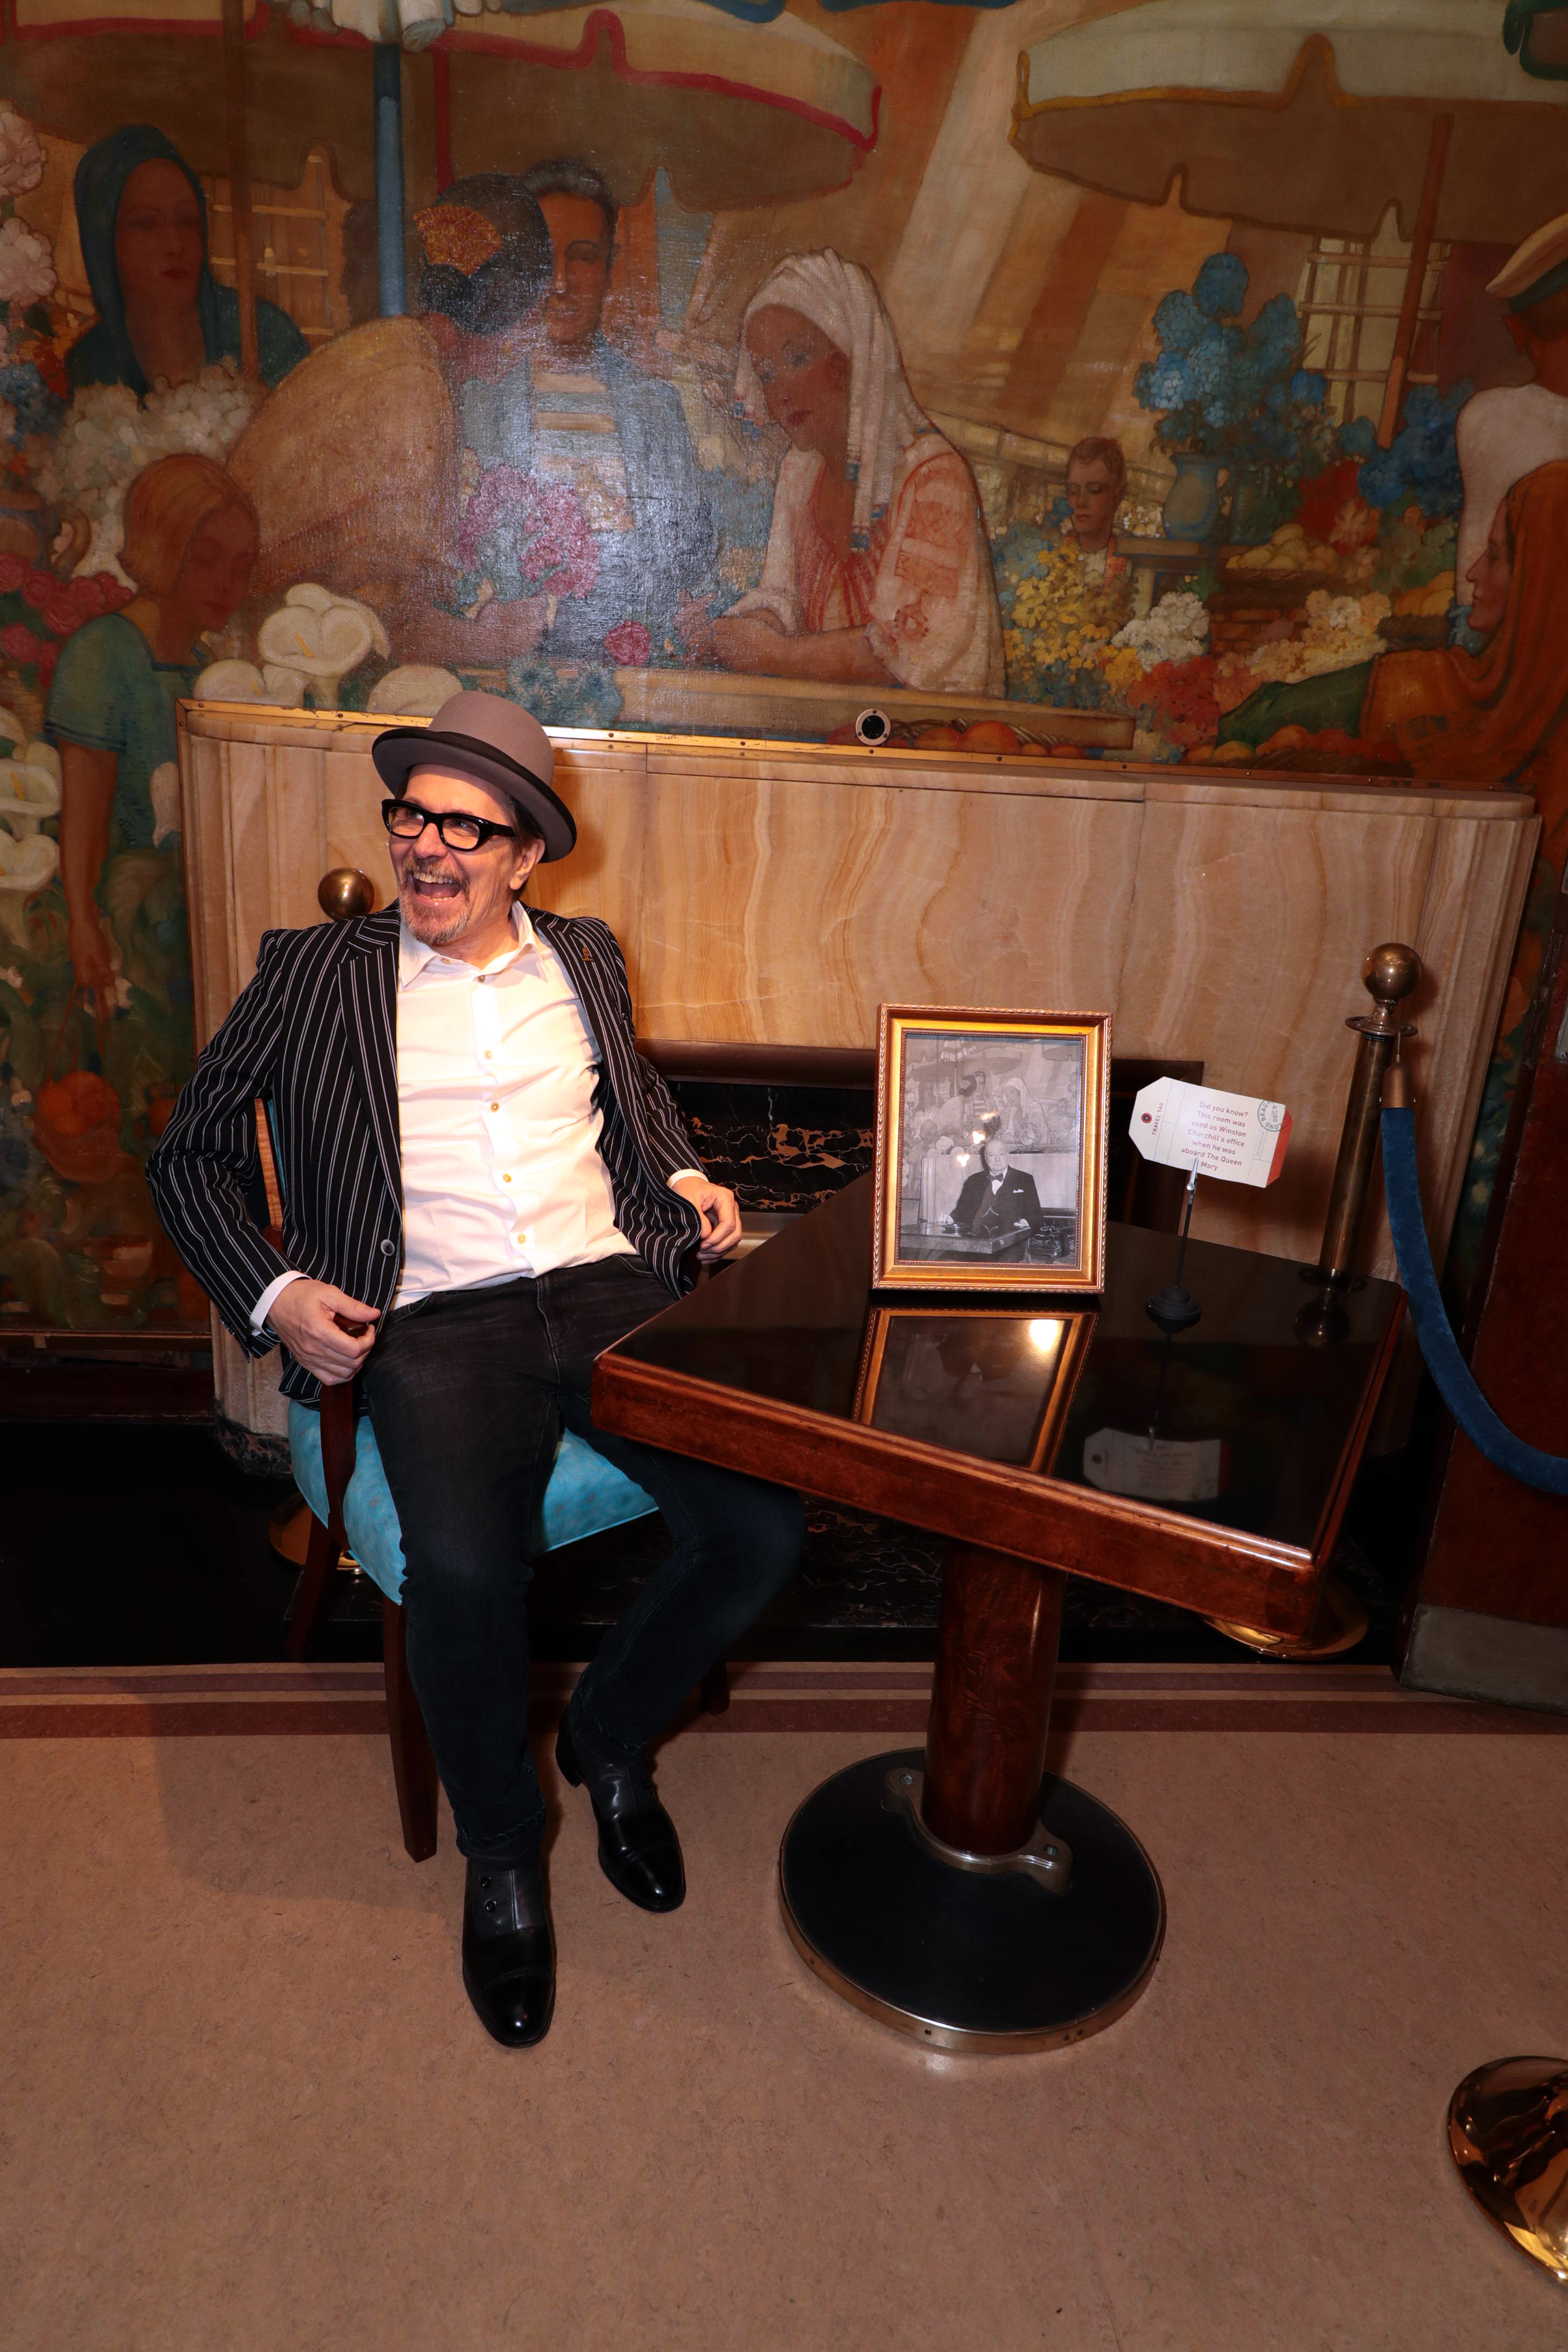 Gary Oldman having a great time at the Their Finest Hour exhibit in The Queen Mary